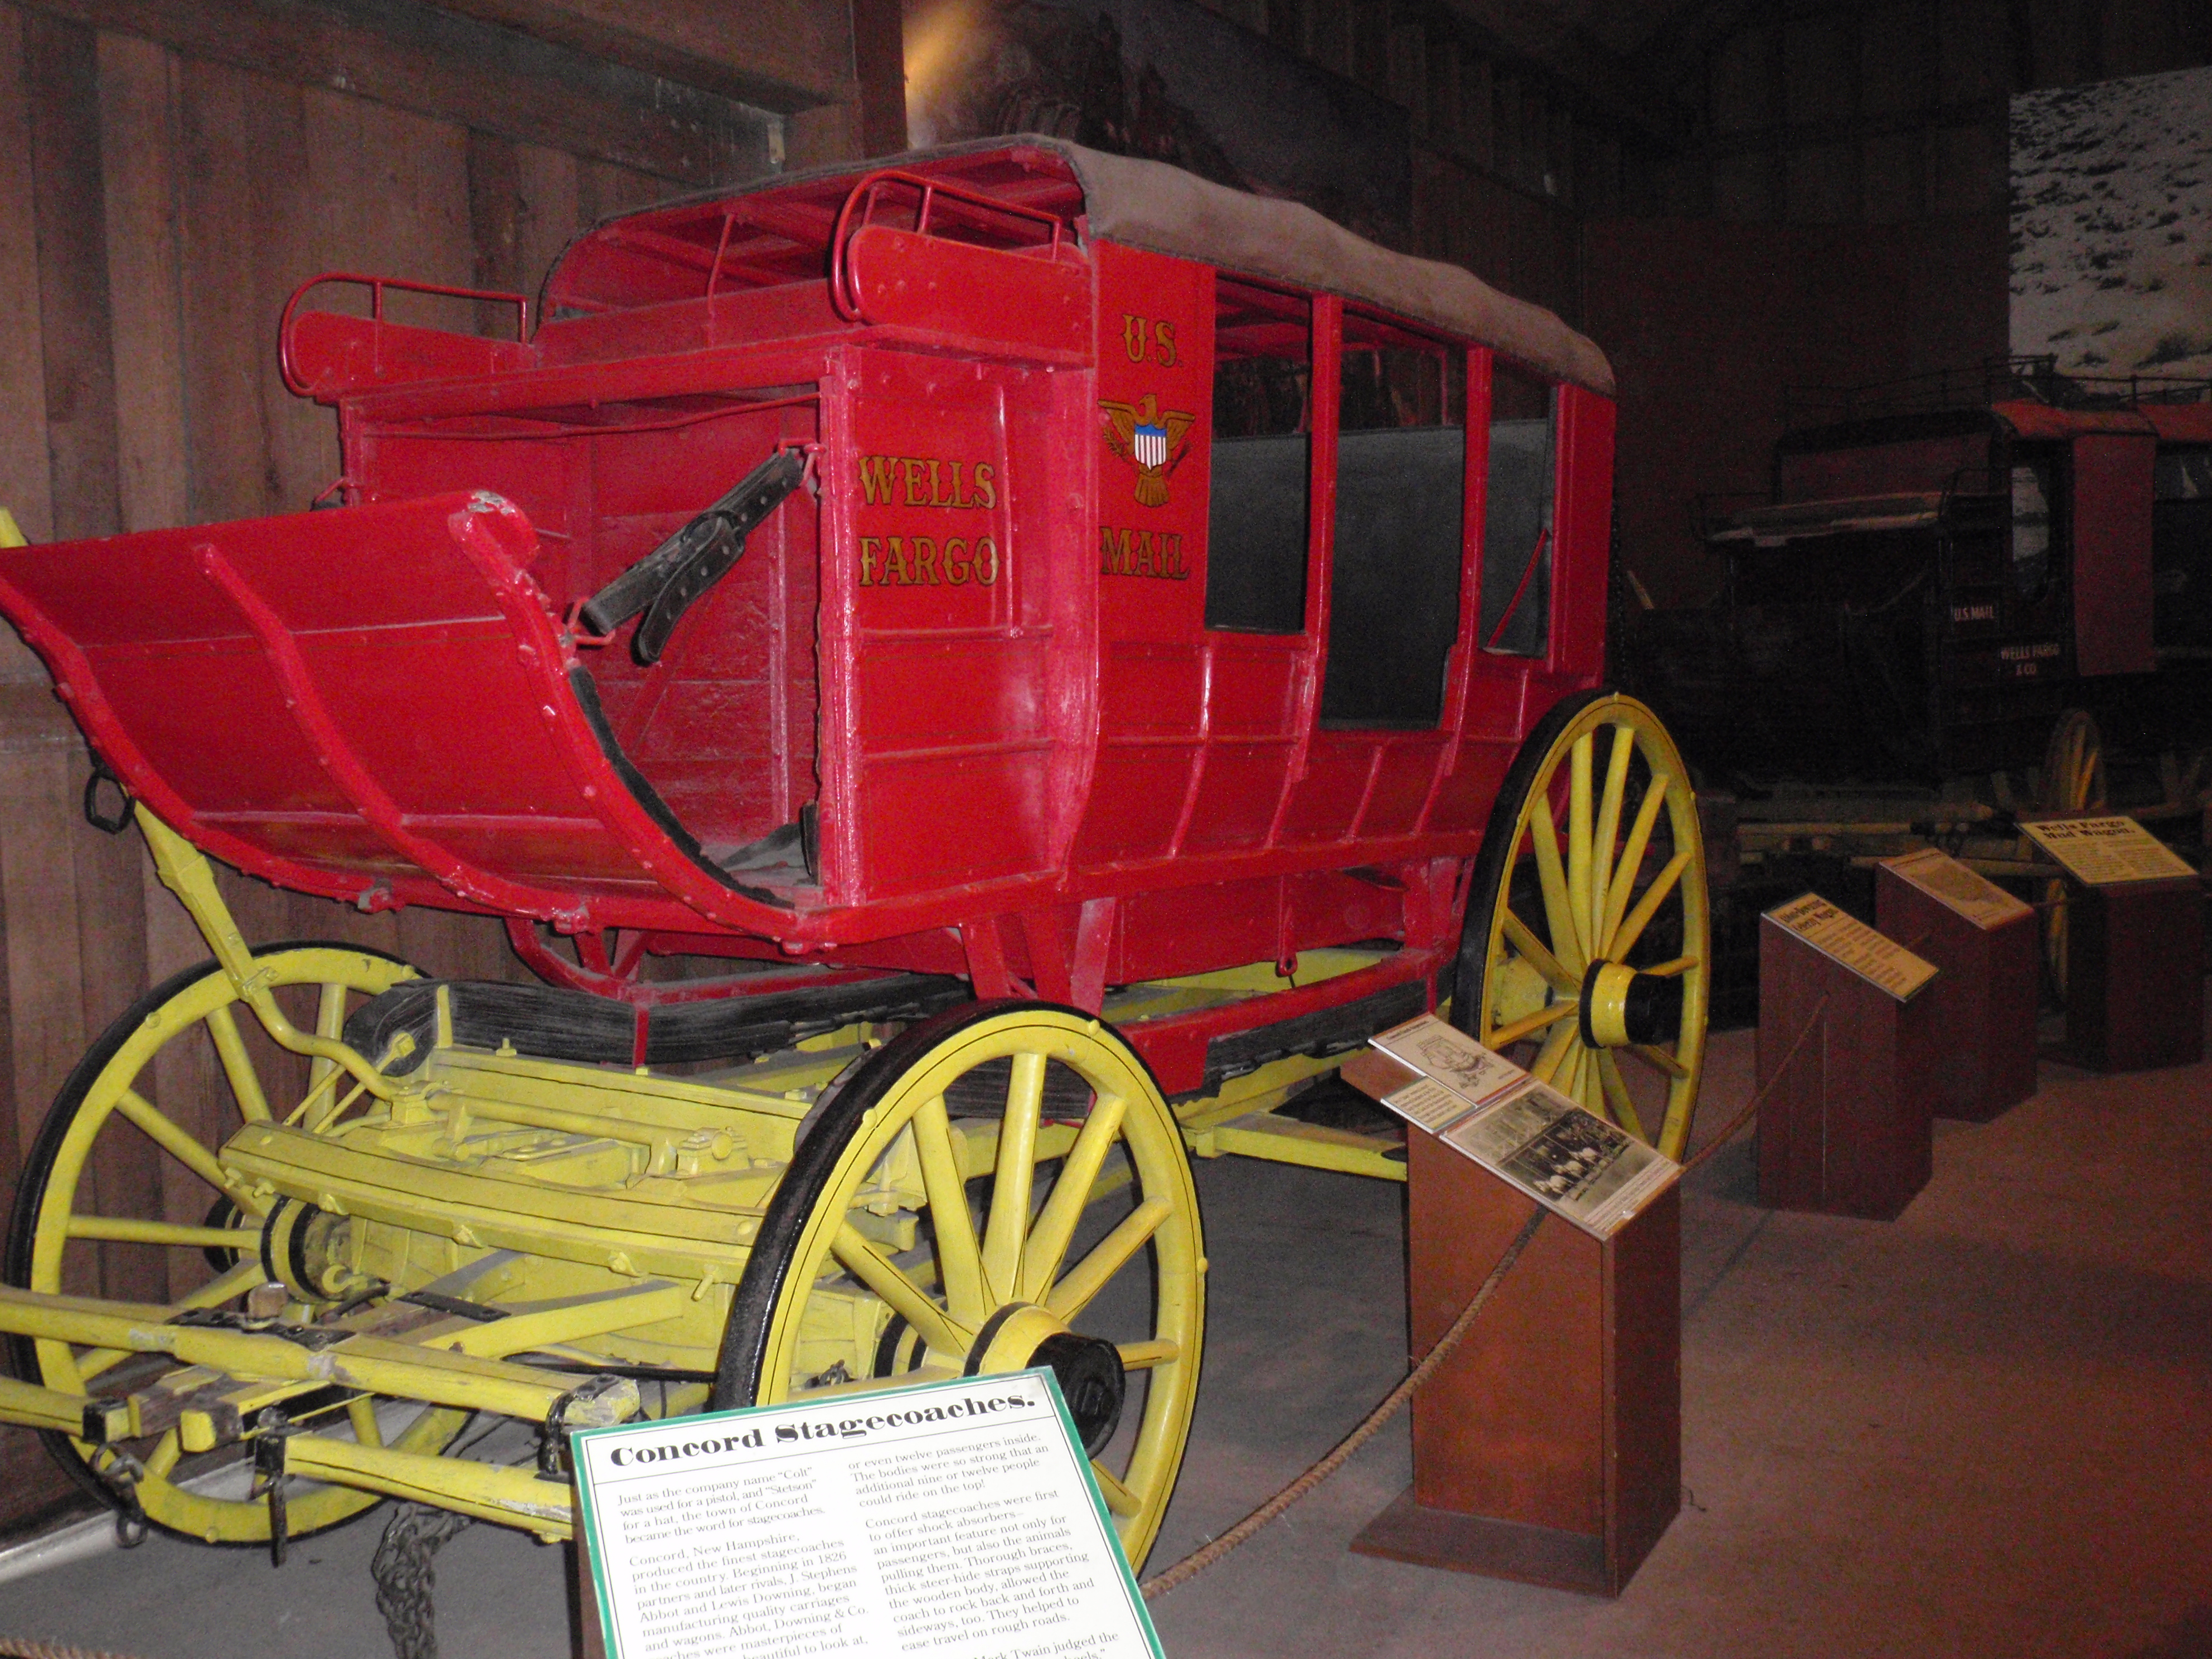 Concord stagecoach painted in Wells Fargo colors, housed at the Seeley Stable Museum Hazard Collection in Old Town San Diego Historic Park. April 2012 photo by James Ulvog.